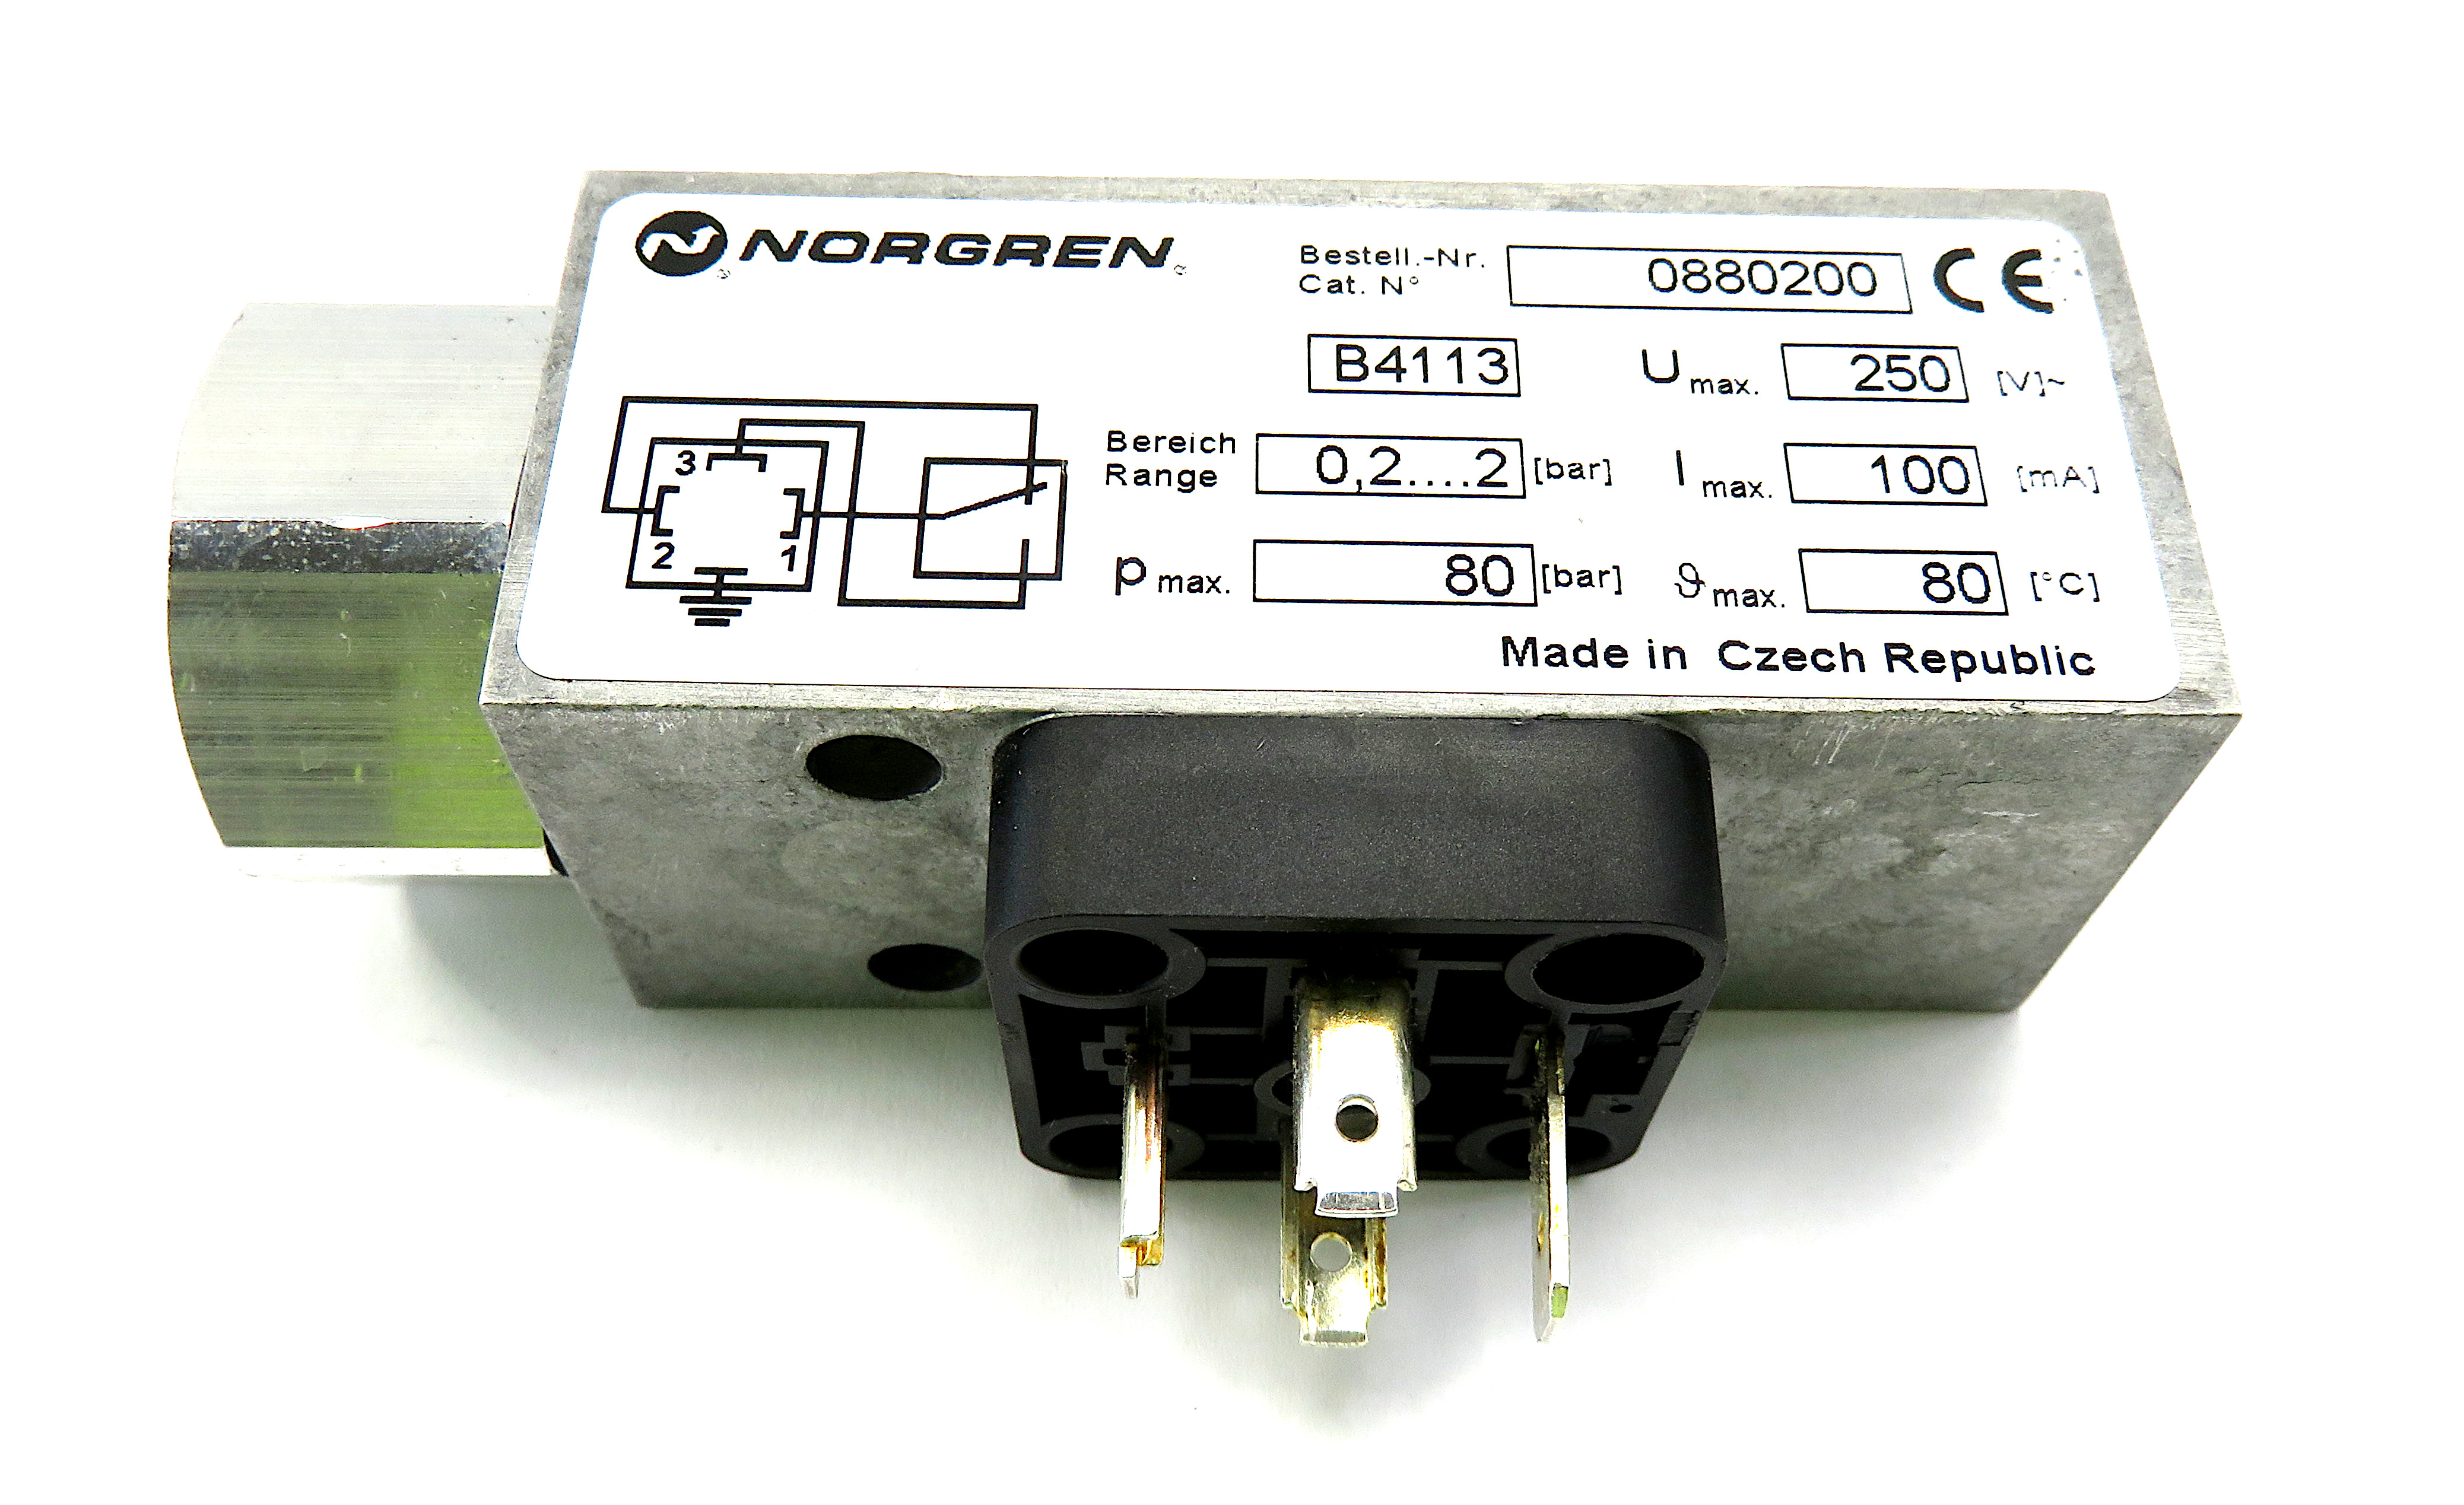 Norgren Pneumatic Pressure Switch - Connection G 1/4 - 0.2bar to 2 bar - 0880200